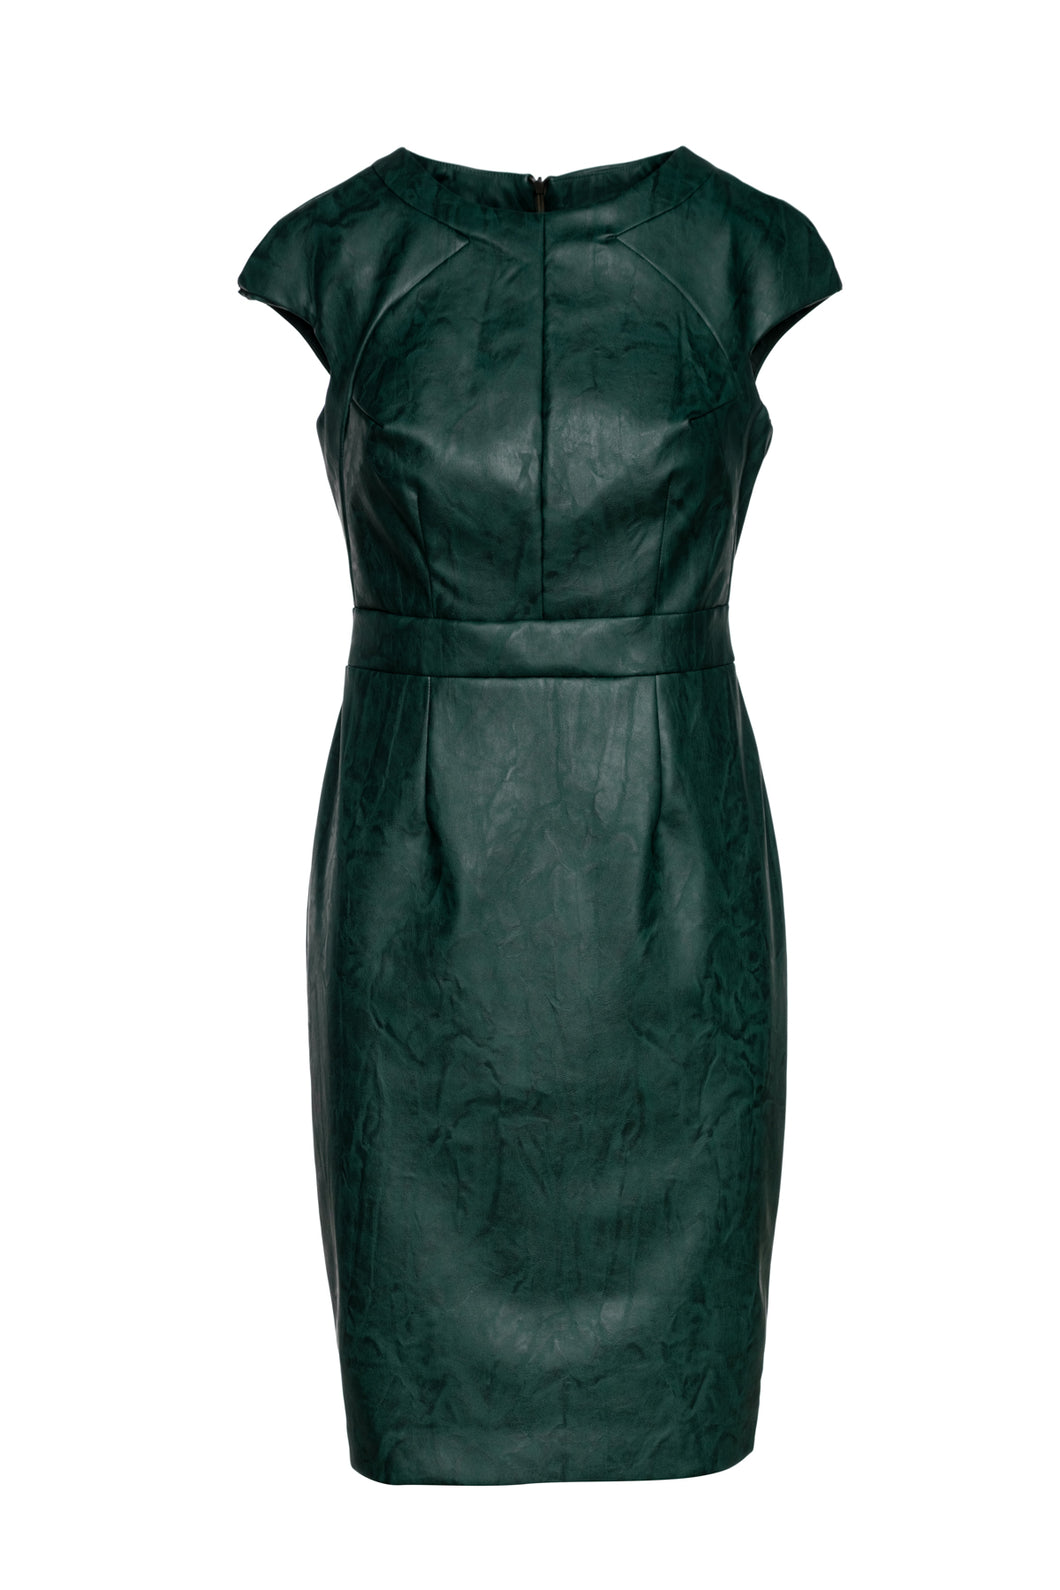 Green Faux Leather Dress